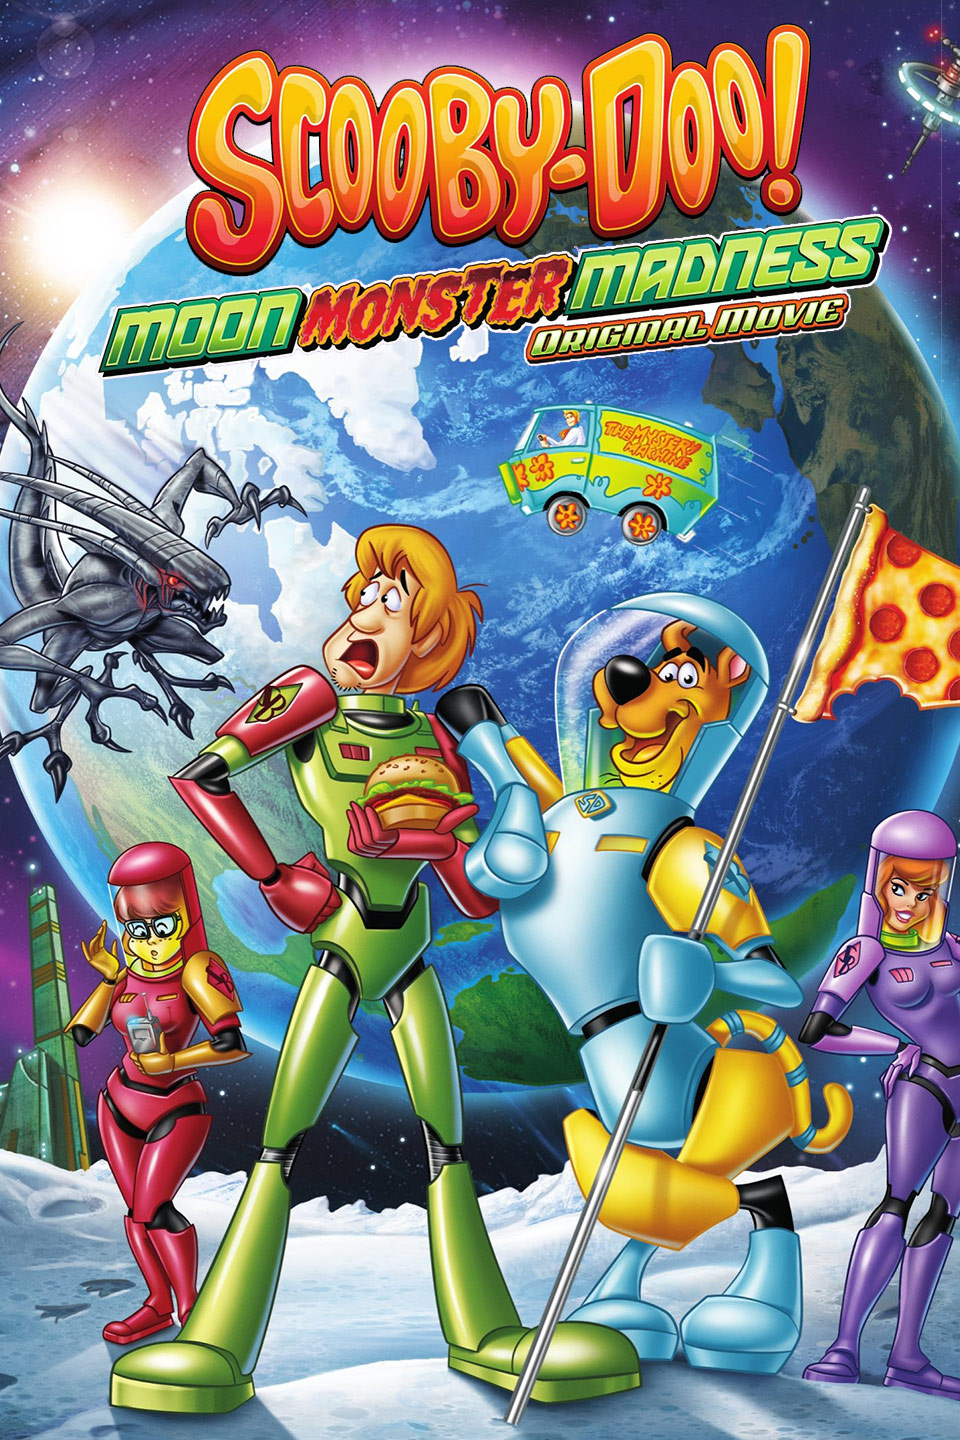 Scooby-Doo!-Moon-Monster-Madness